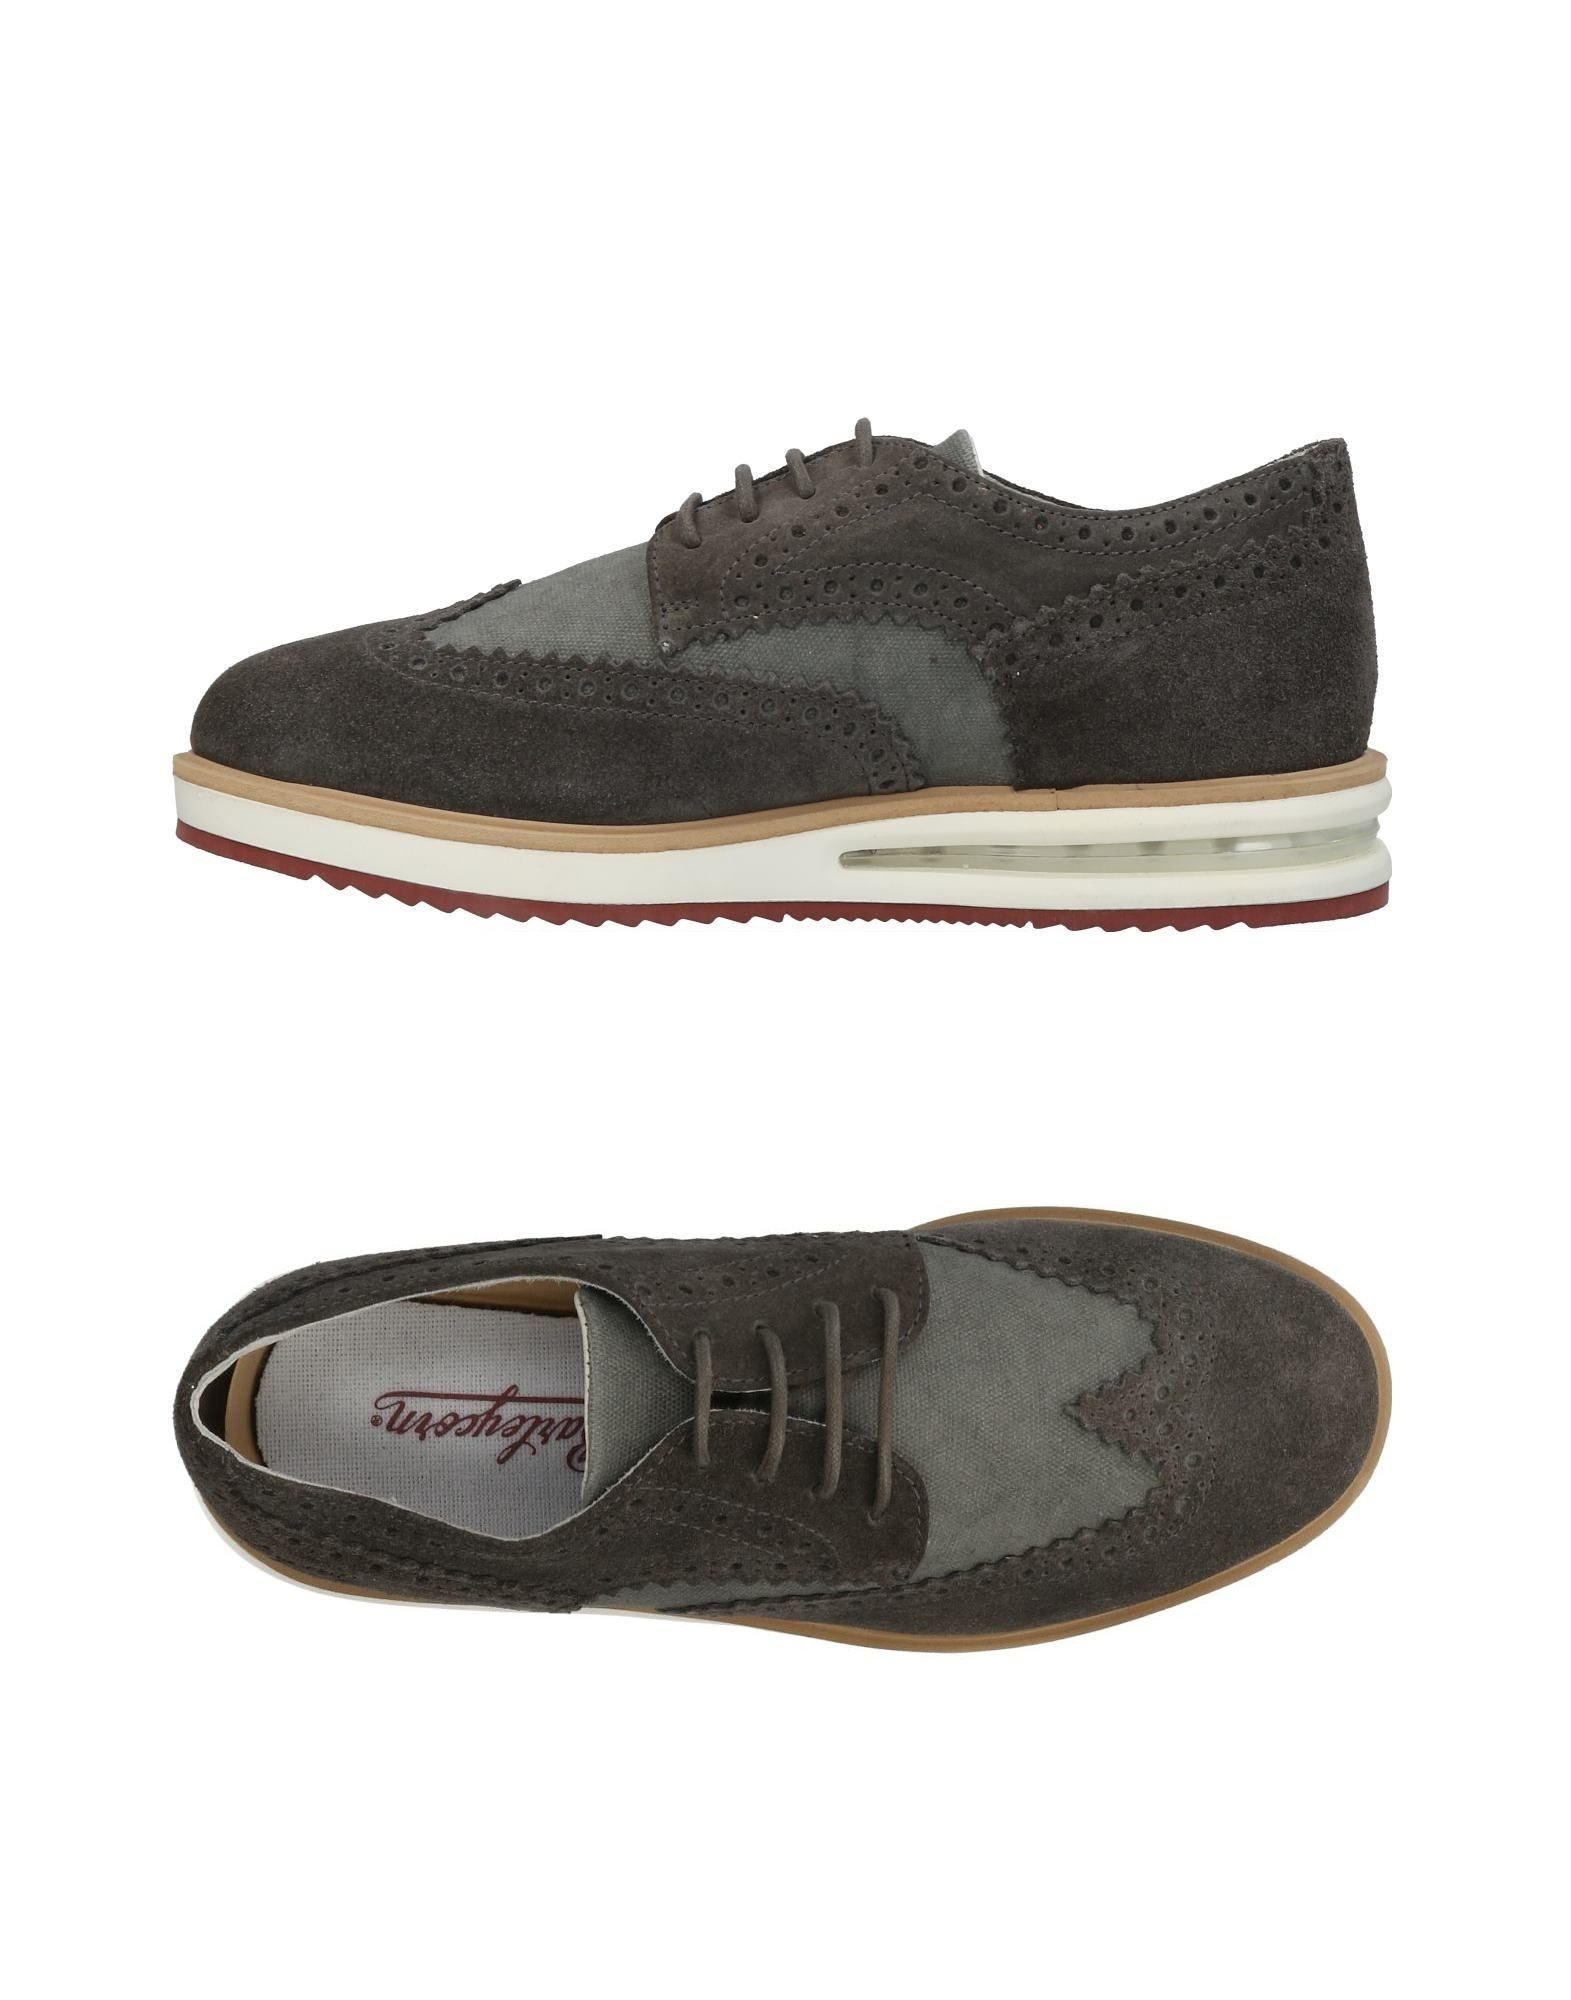 CHAUSSURES - Chaussures à lacetsBarleycorn EO1Jlbd